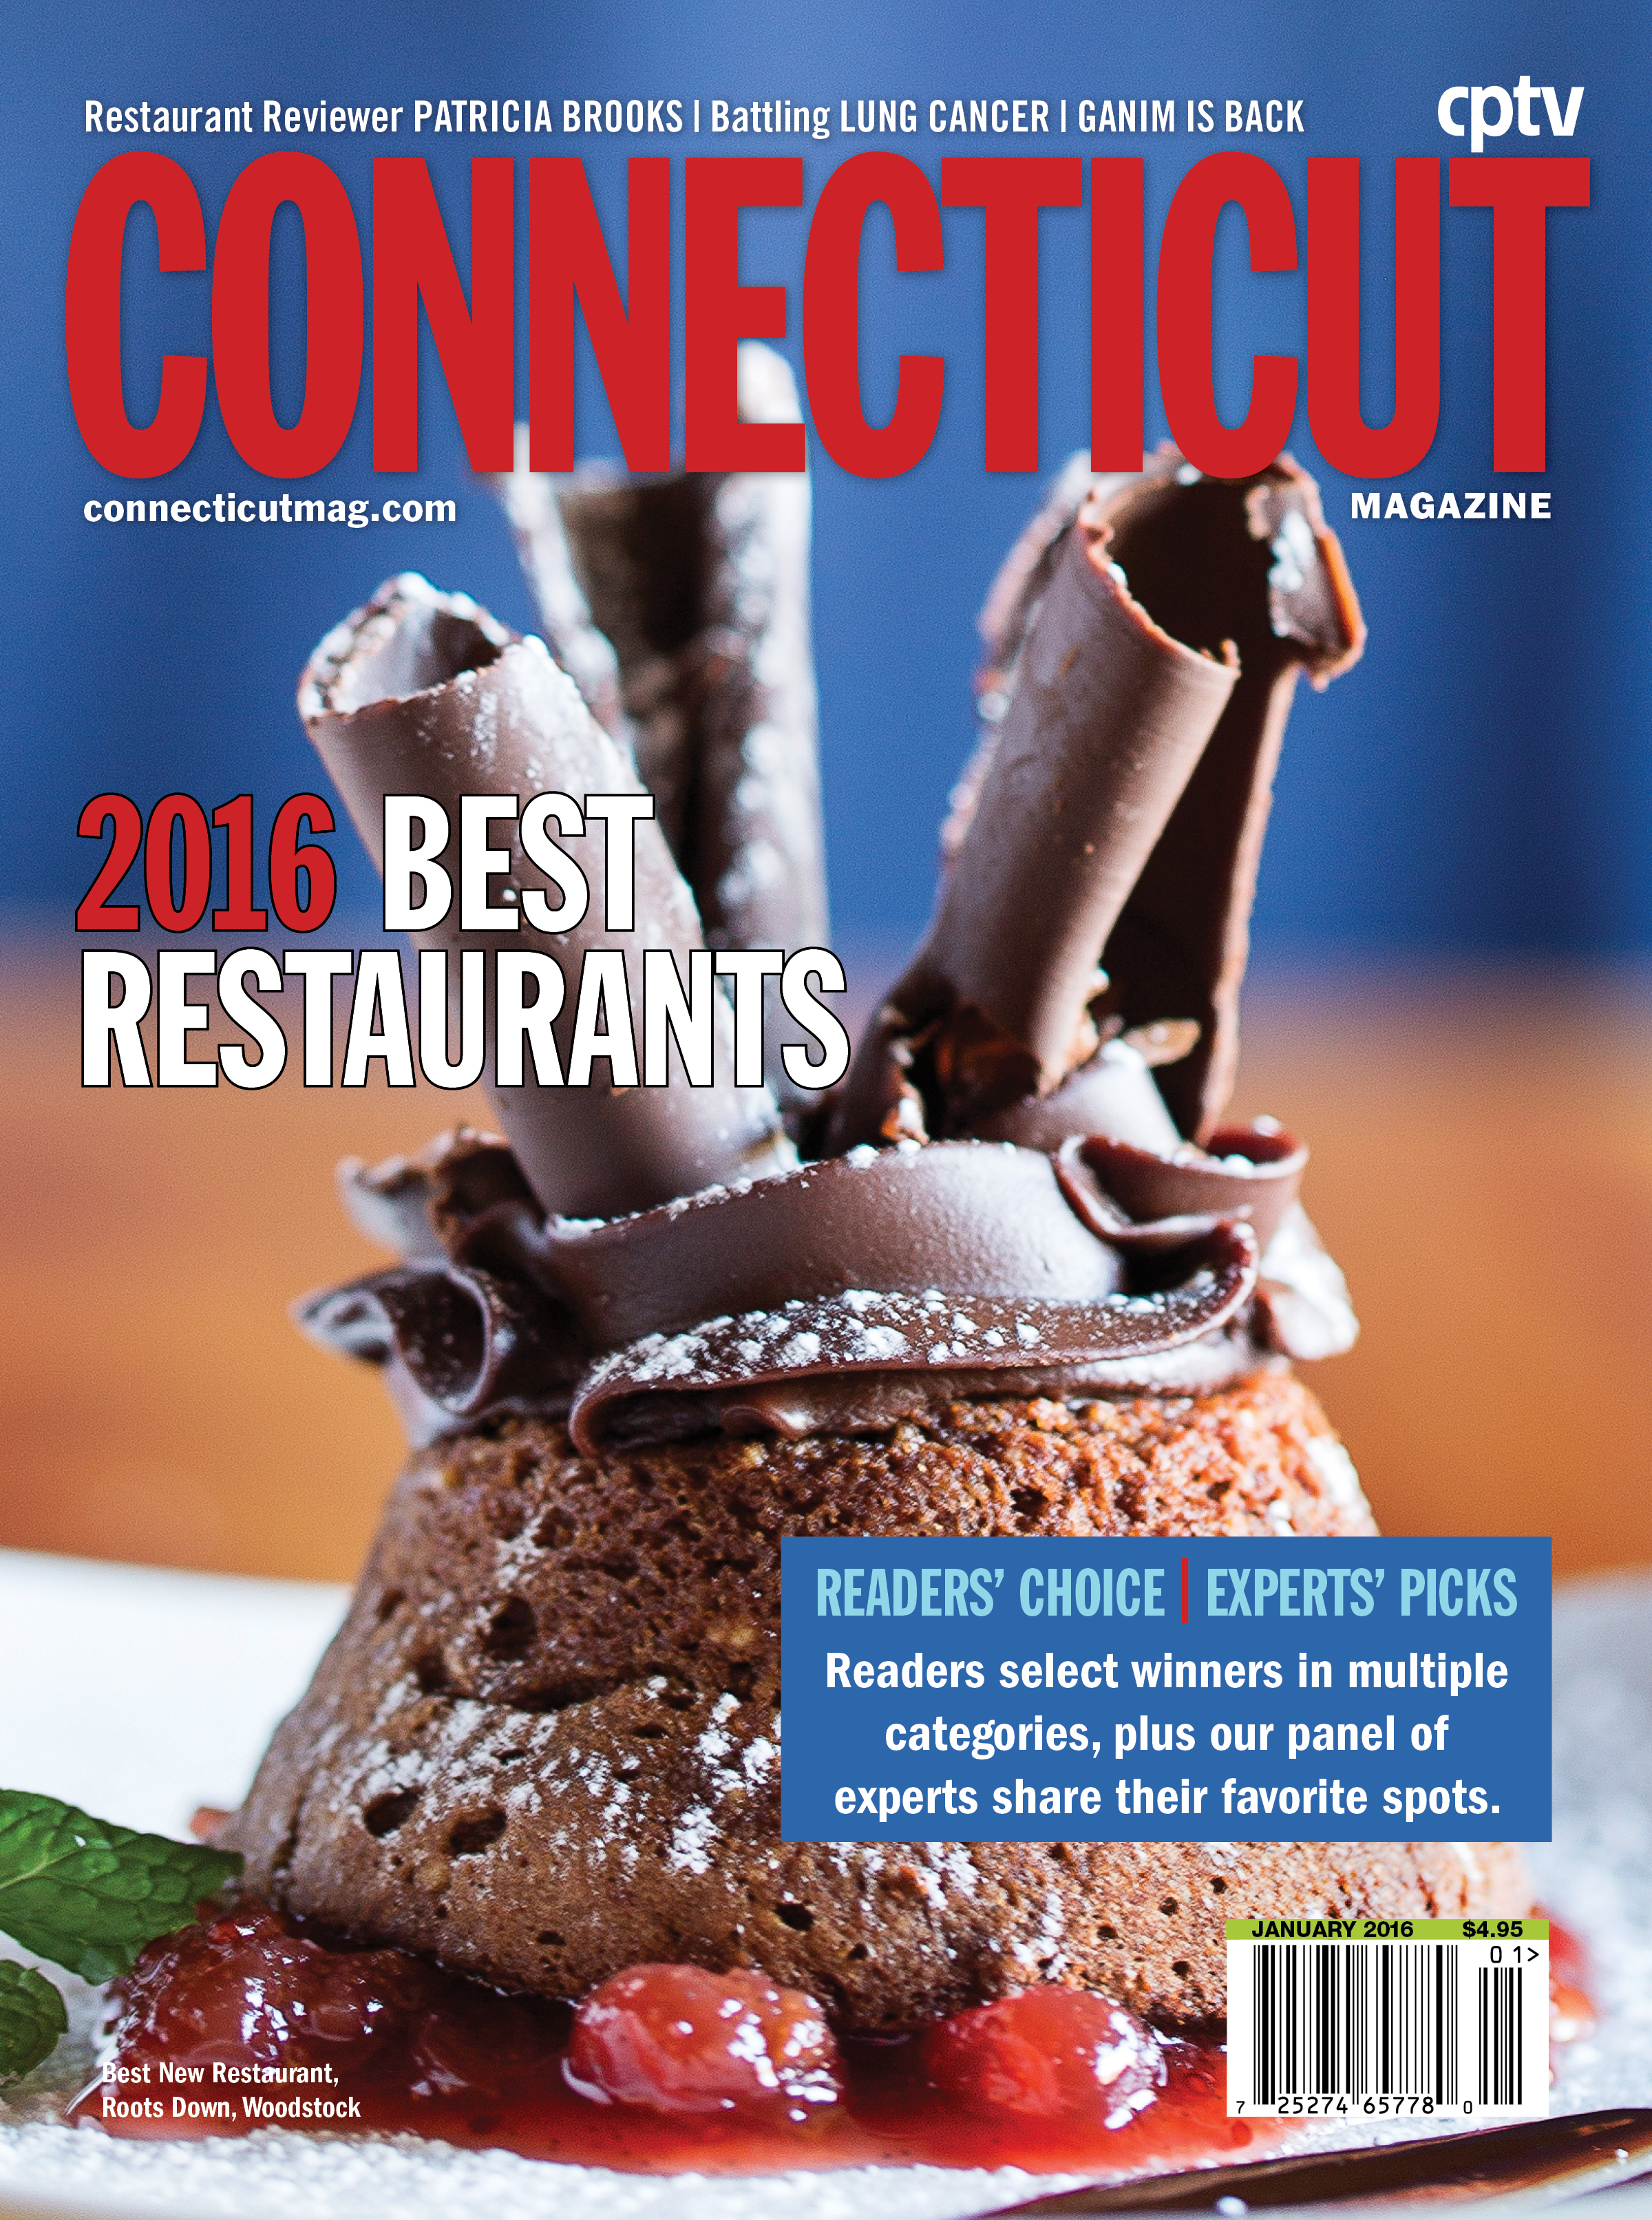 The Hideaway was featured in Connecticut Magazine